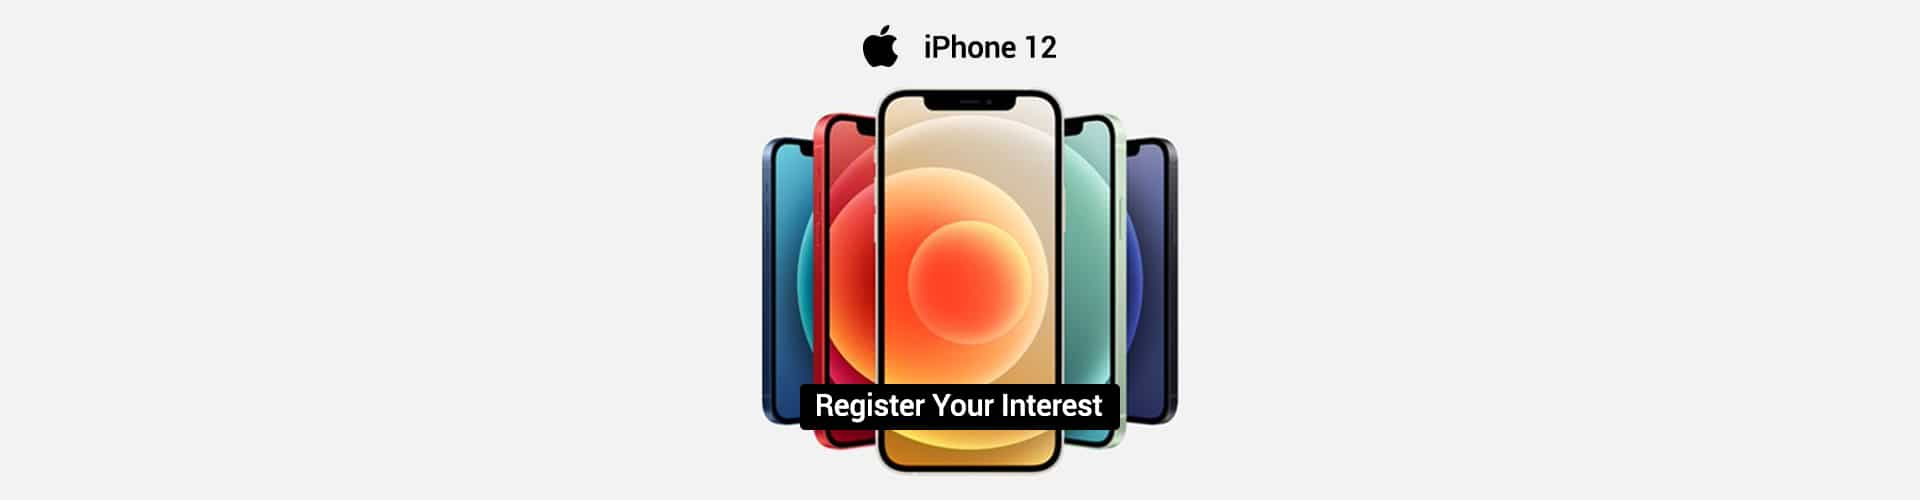 Register Your Interest In The Latest Apple iPhone 12